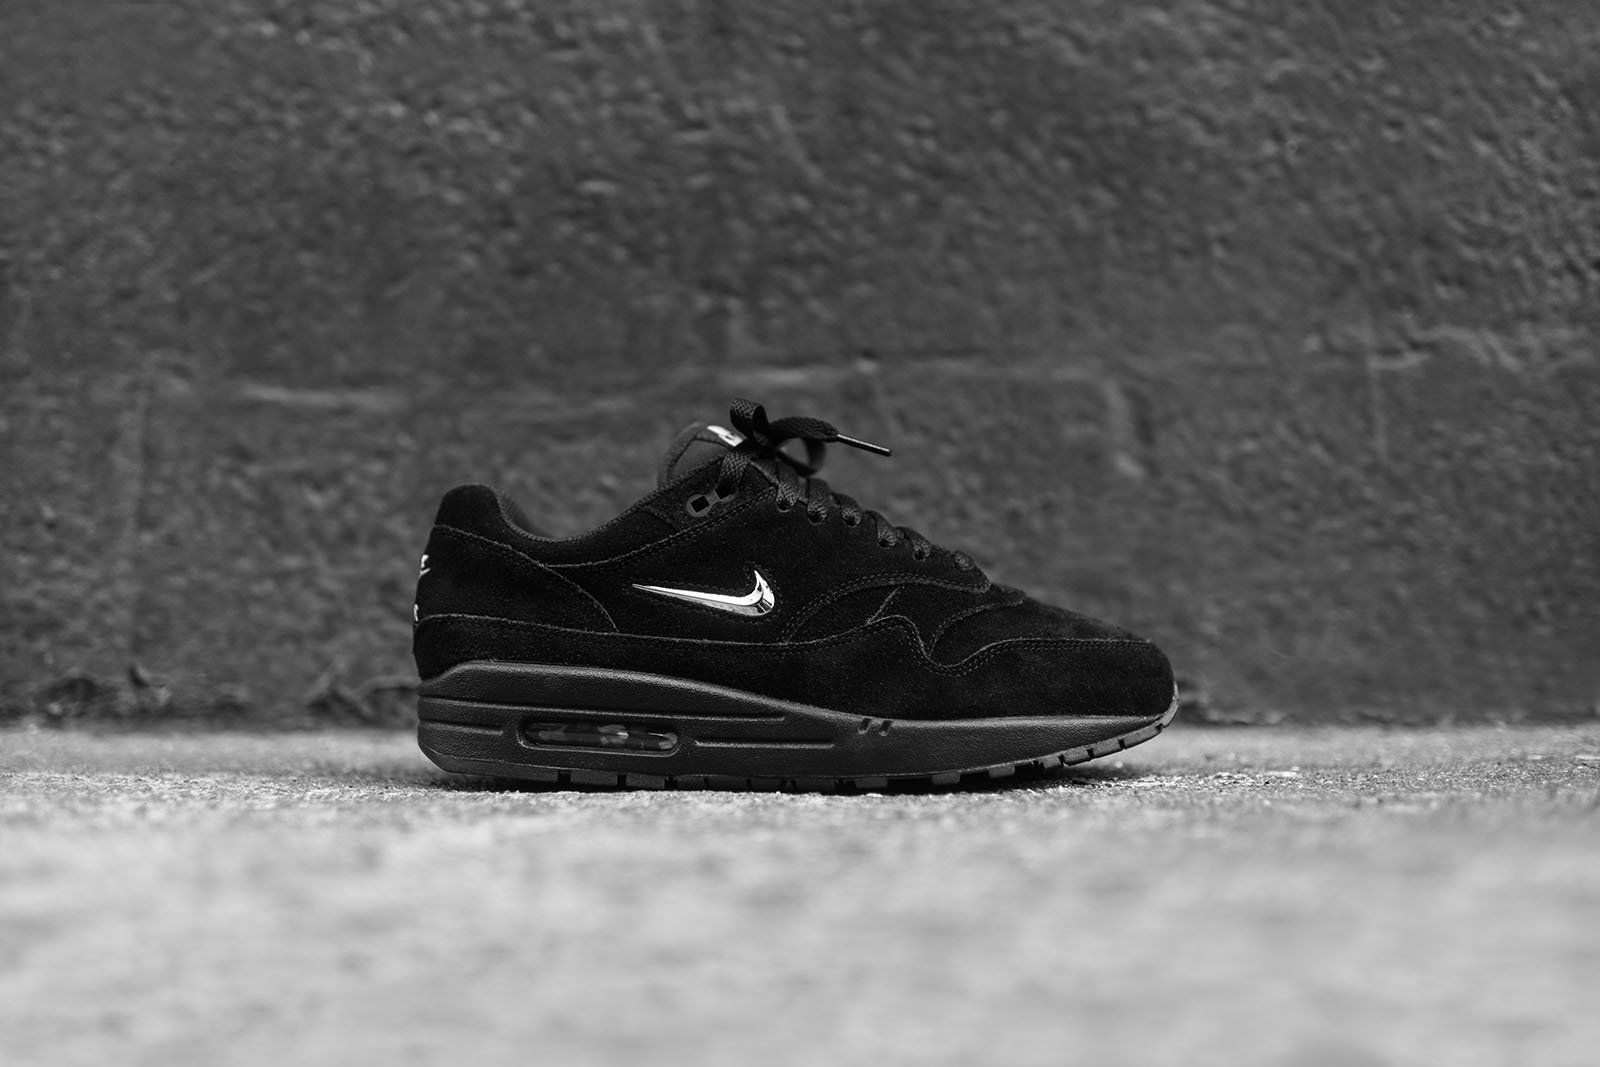 Nike Air Max 1 PRM SC Black Chrome | Sneakers Shoes